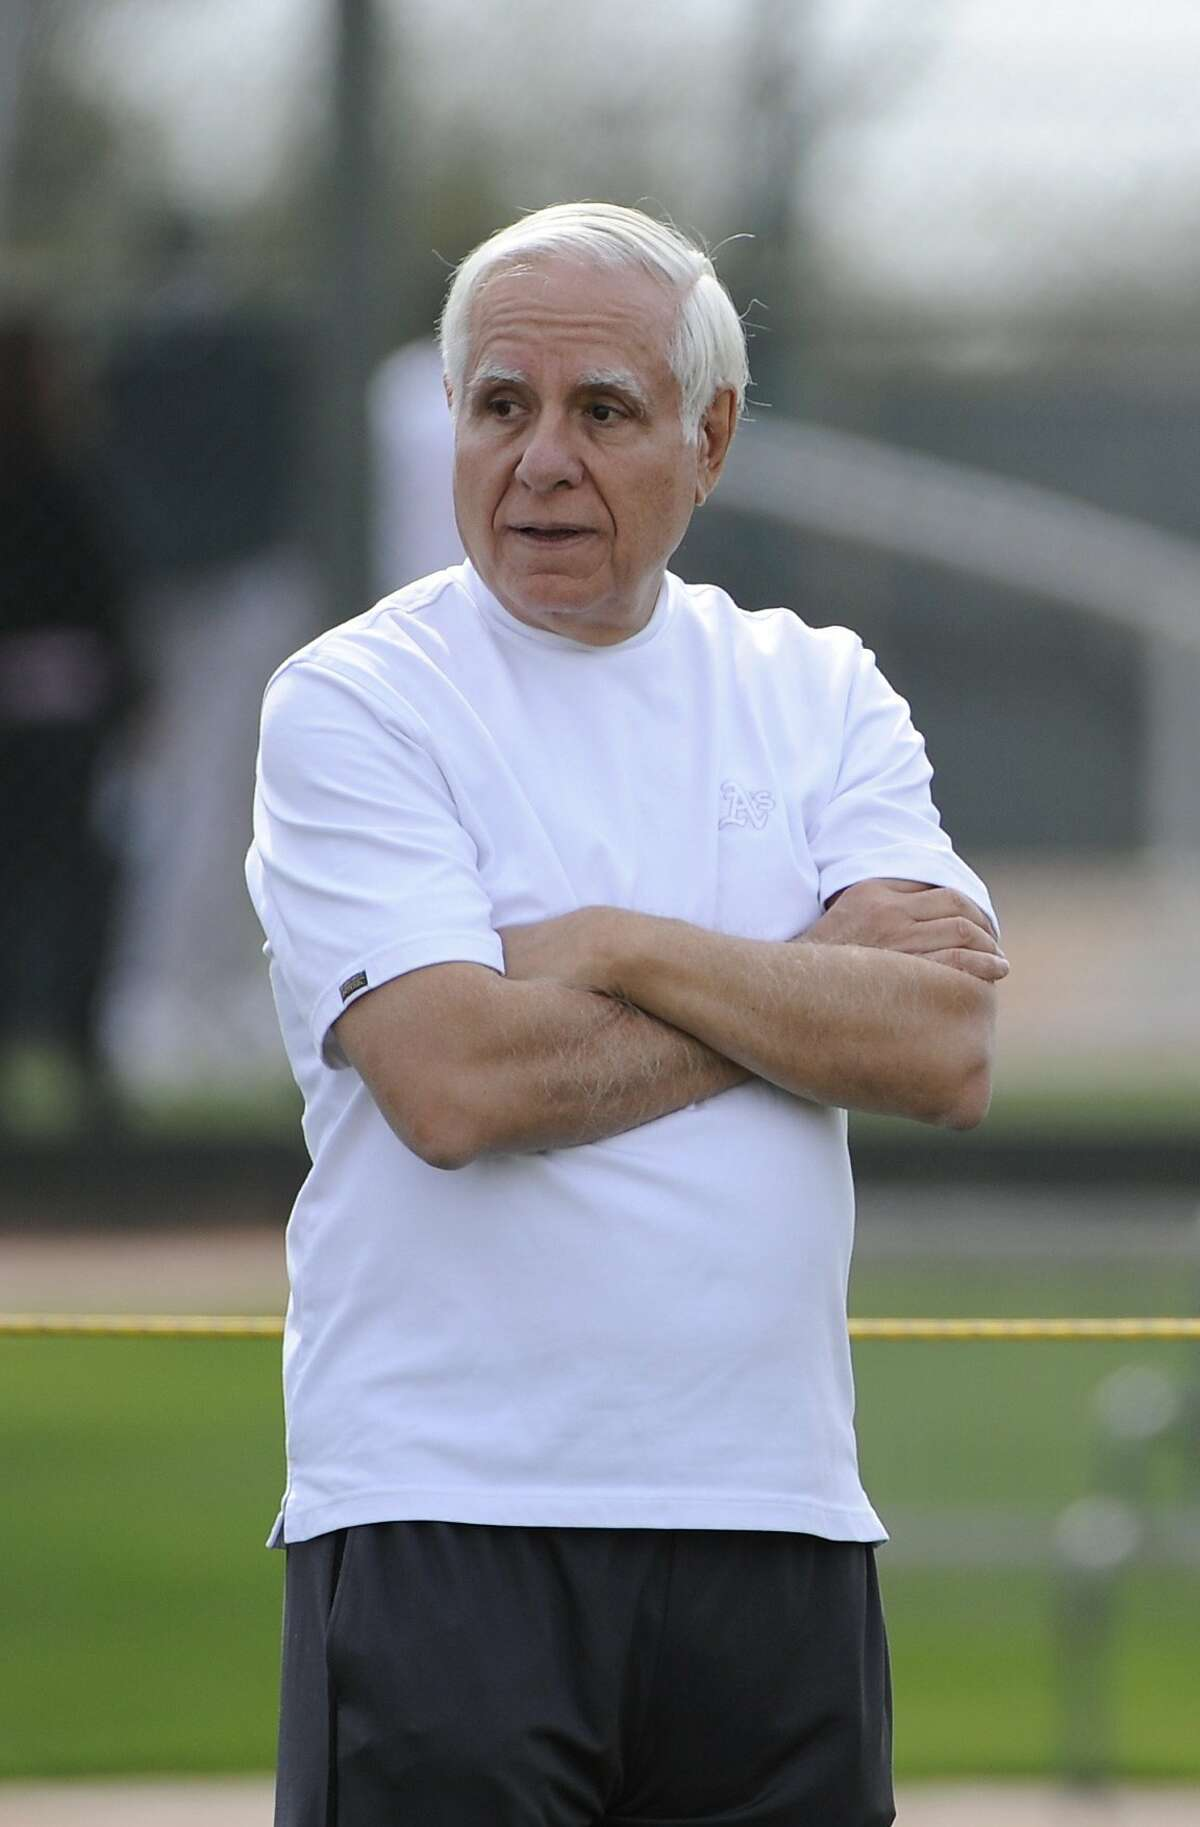 FILE - This Feb. 16, 2009, file photo shows Oakland Athletics owner Lew Wolff during spring training baseball in Phoenix. Wolff tells the AP he hopes Frank McCourt will soon sell the Los Angeles Dodgers so baseball can move forward.